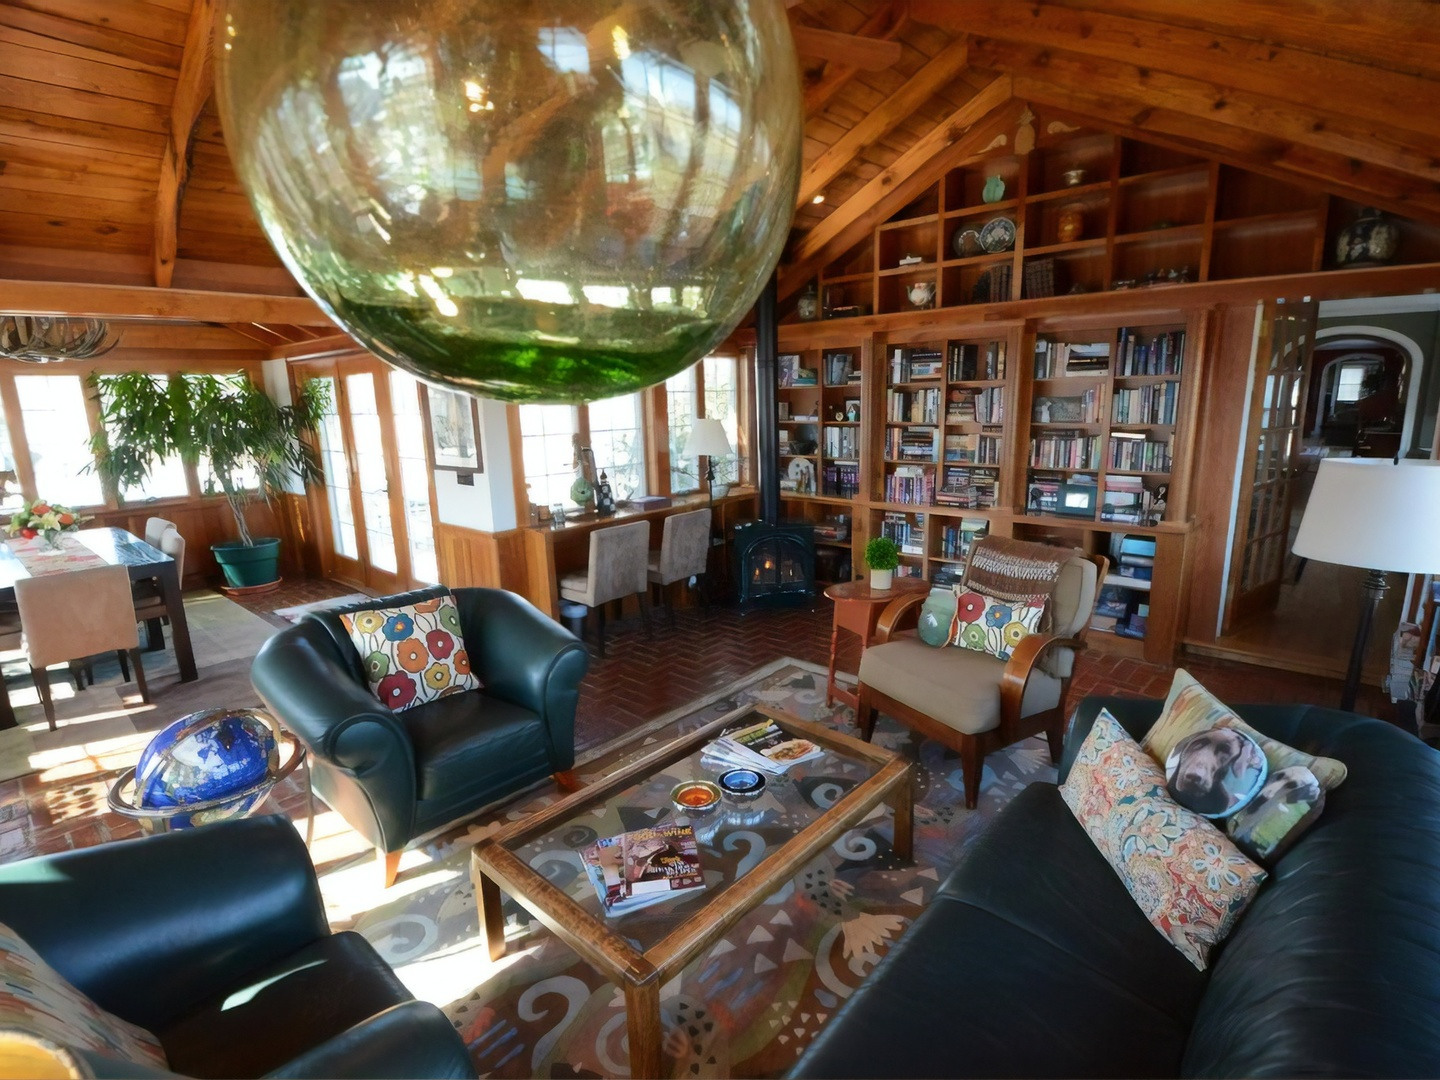 A living room filled with furniture and a large window at Inn at Huntingfield Creek.